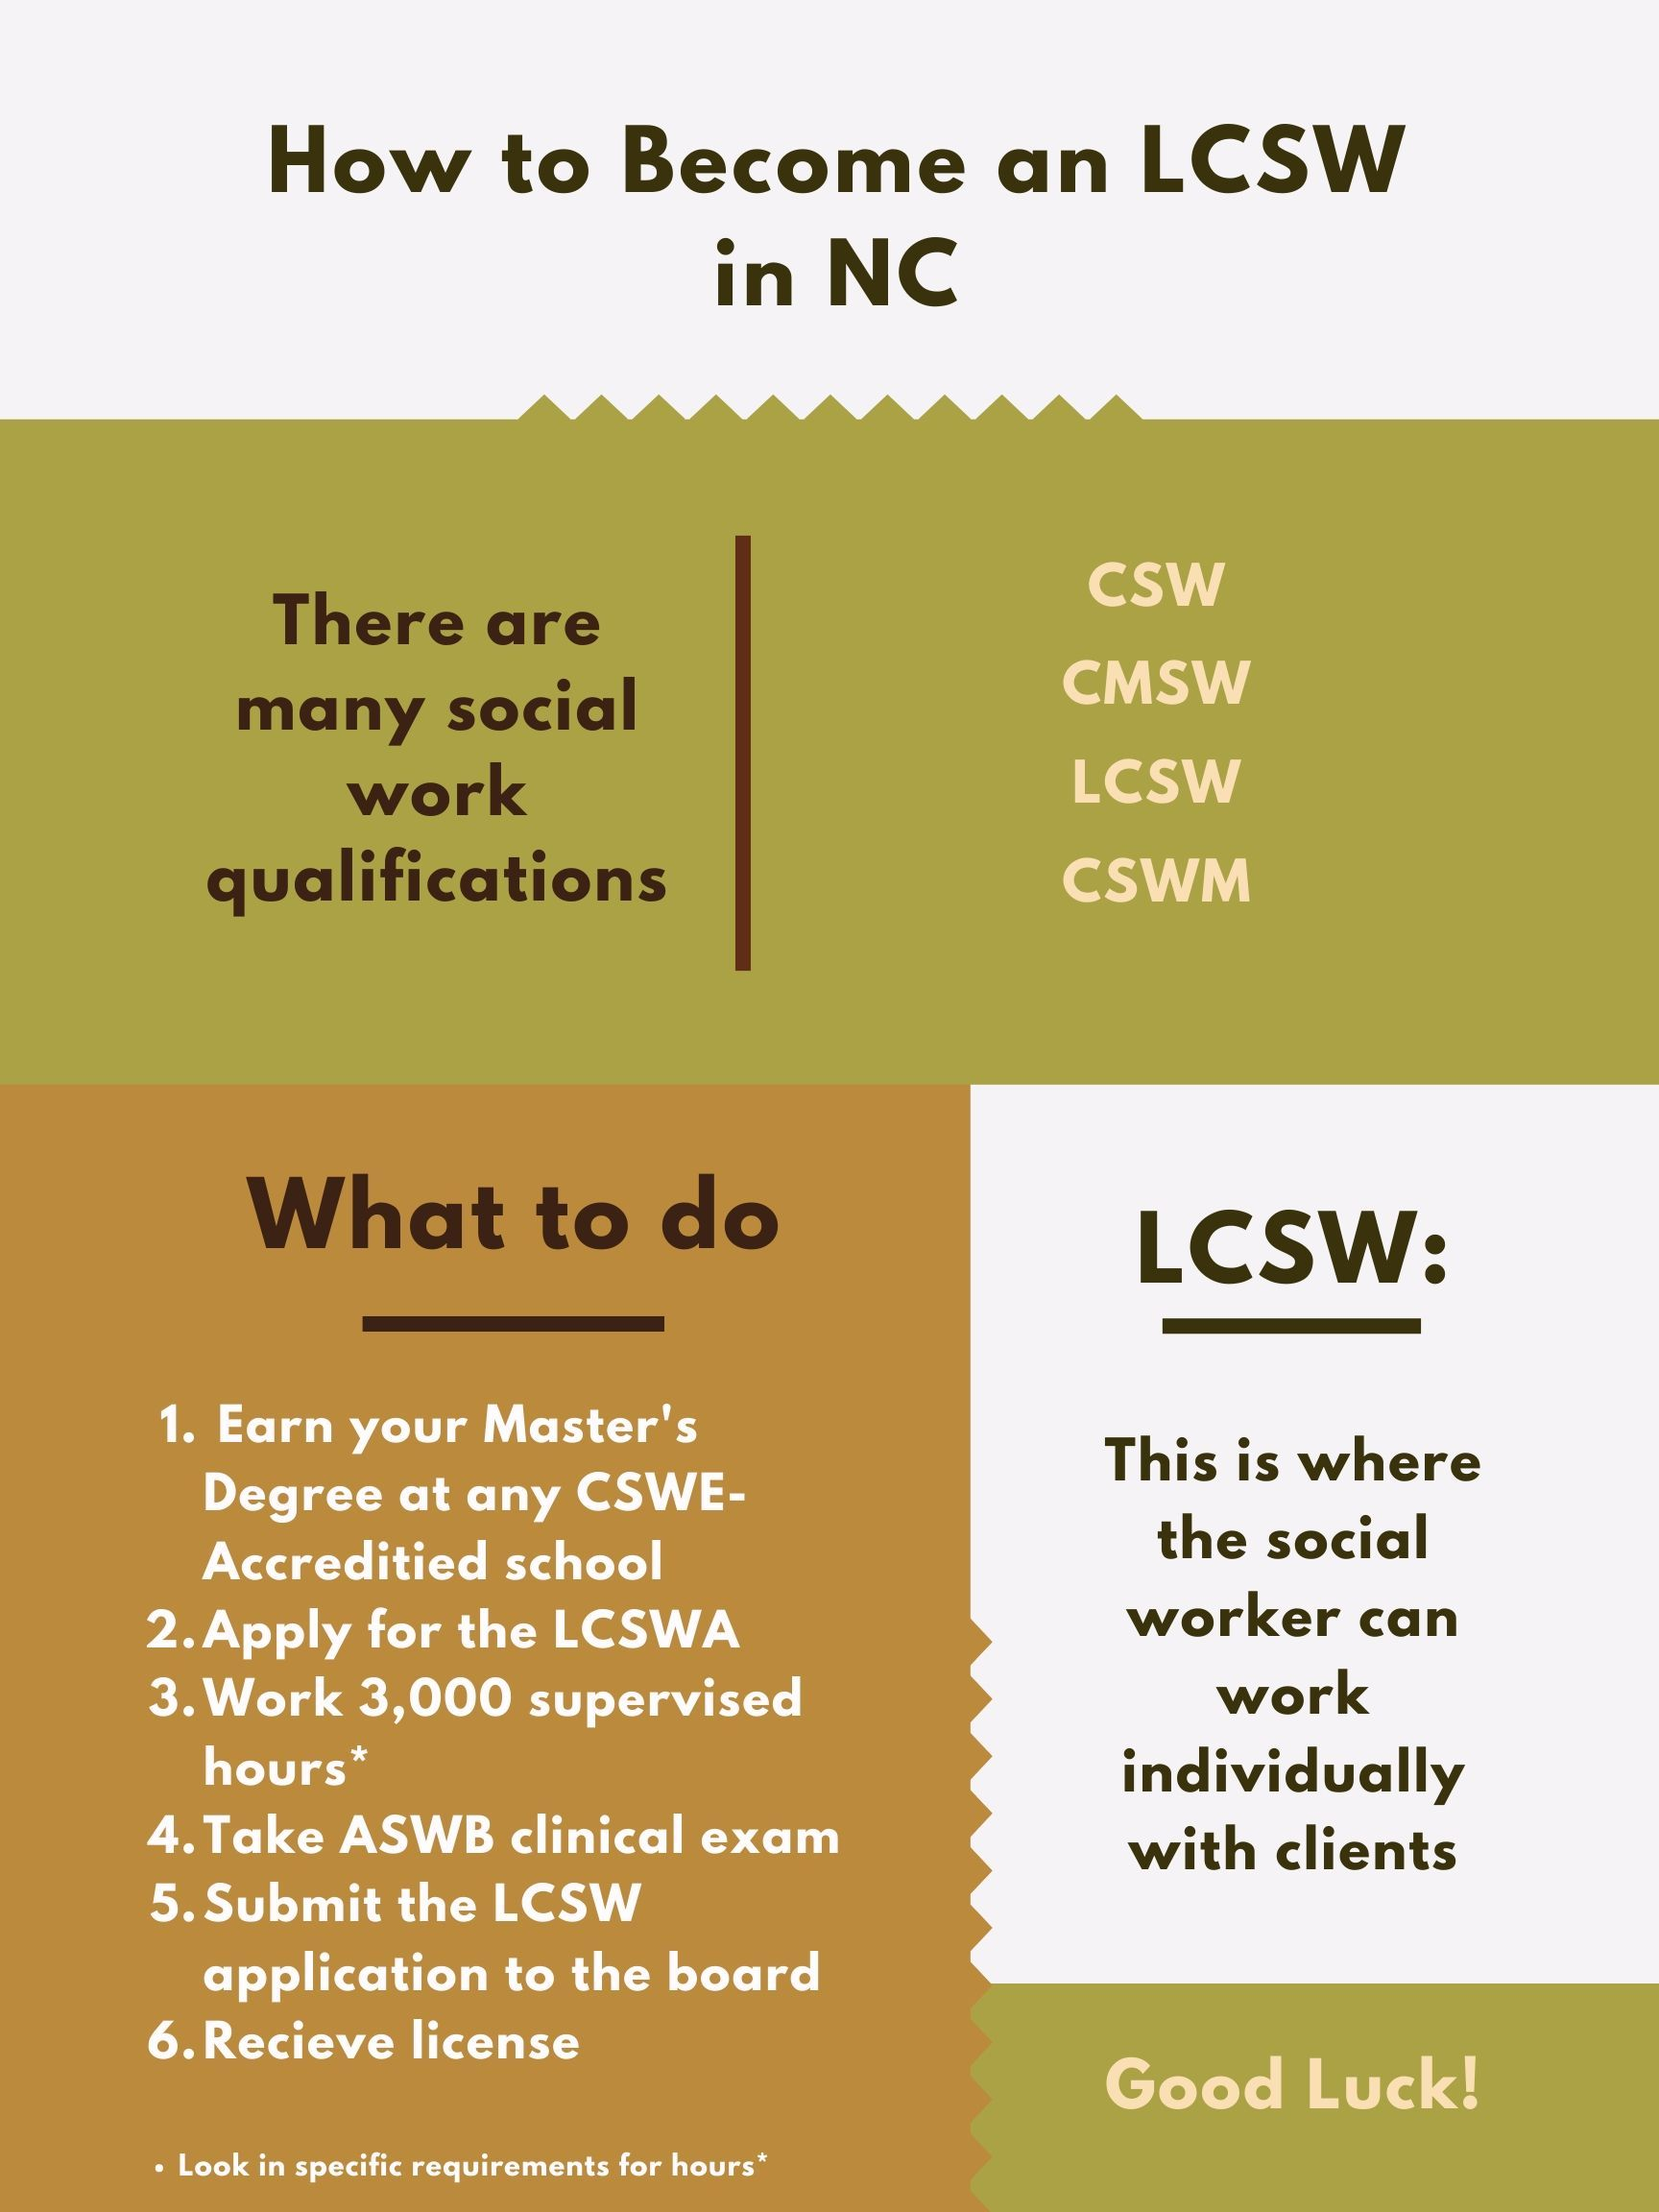 Lcsw Reference Guide In Nc Social Work Practice Social Work License Social Work Programs